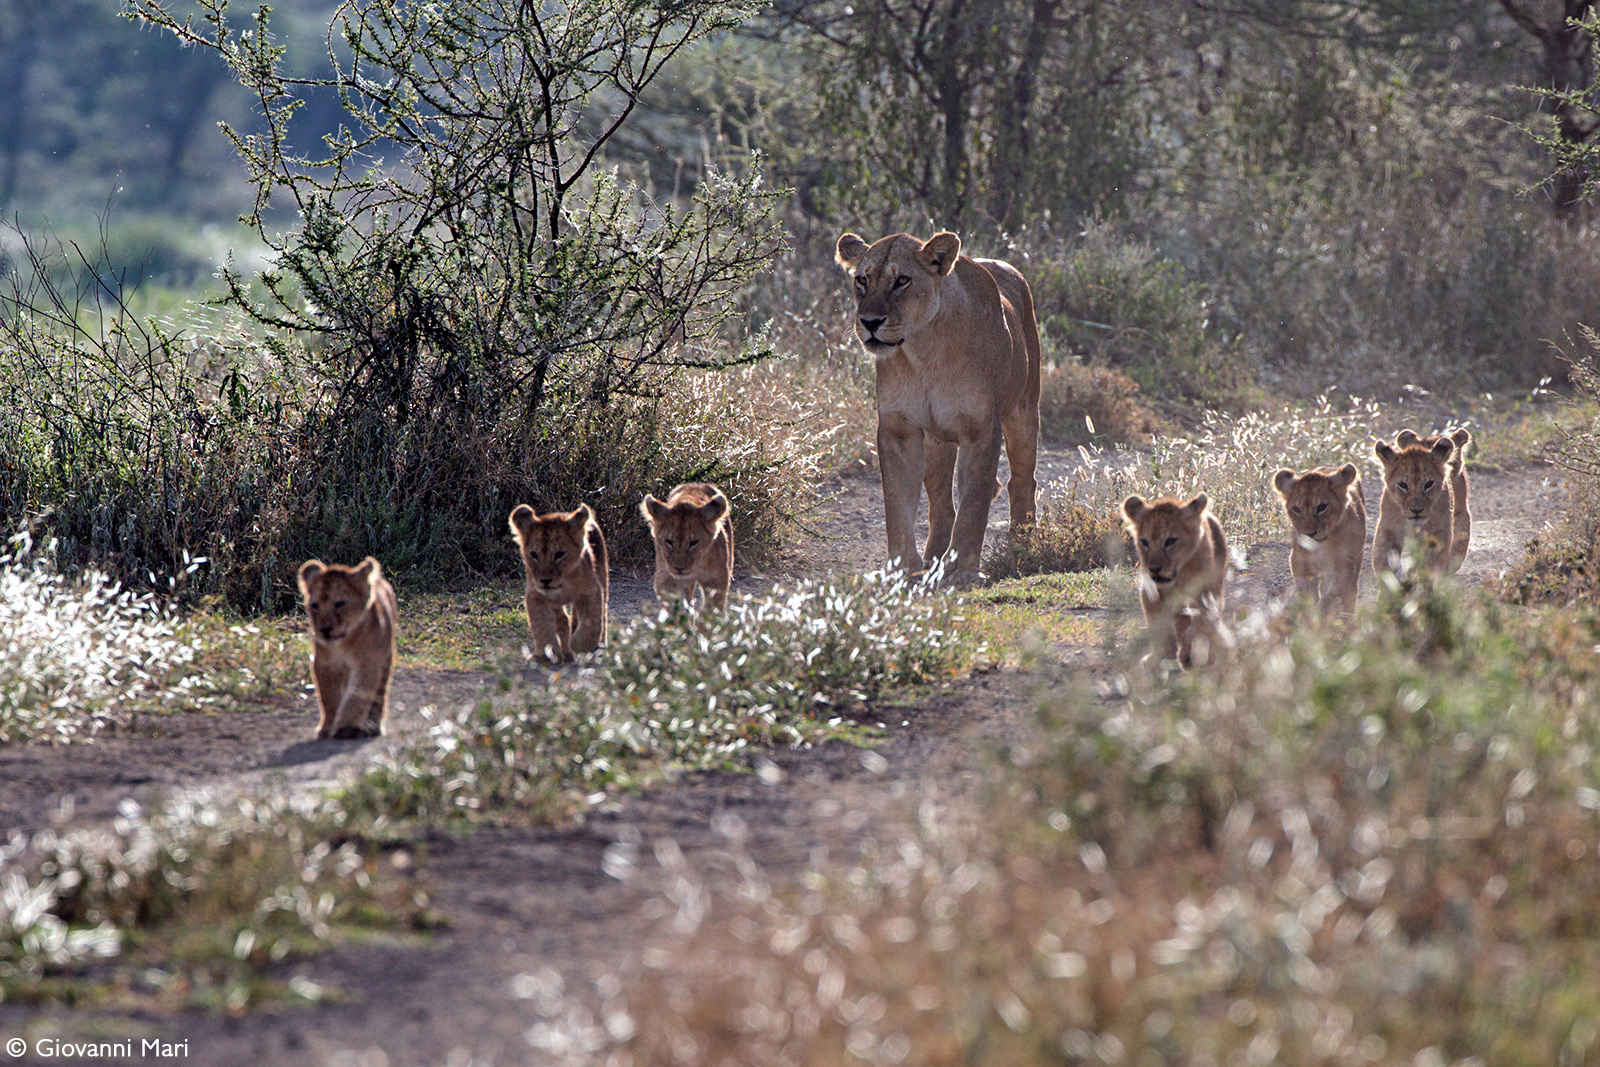 A lioness walks with cubs down a dirt road. Ngorongoro Conservation Area, Tanzania © Giovanni Mari